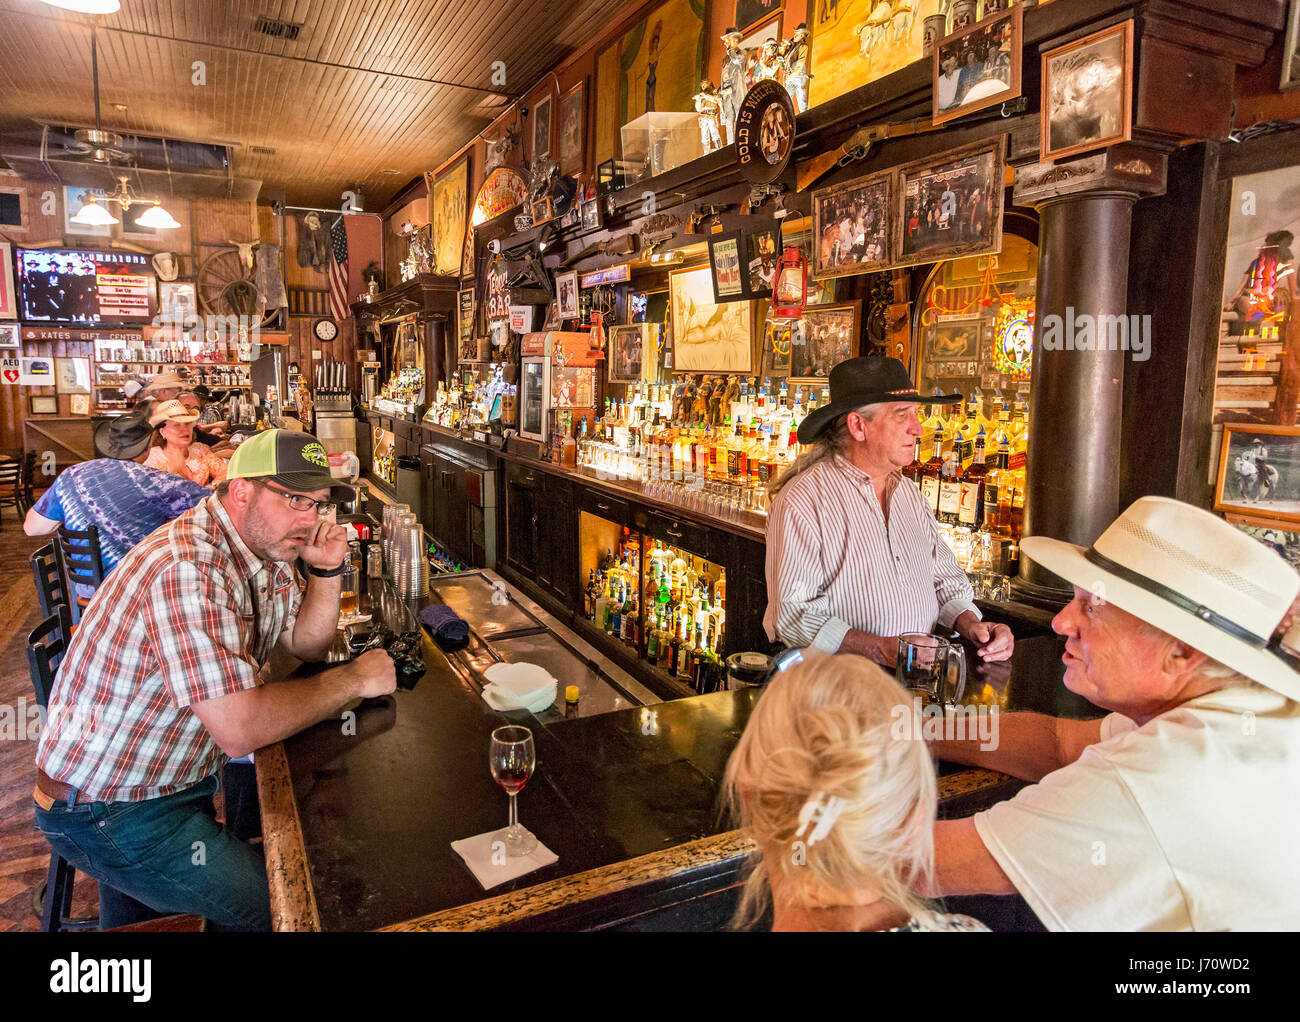 Big Nose Kate's Saloon with stained glass and lots of old west character in Tombstone, AZ. Tombstone is an historic - Stock Image